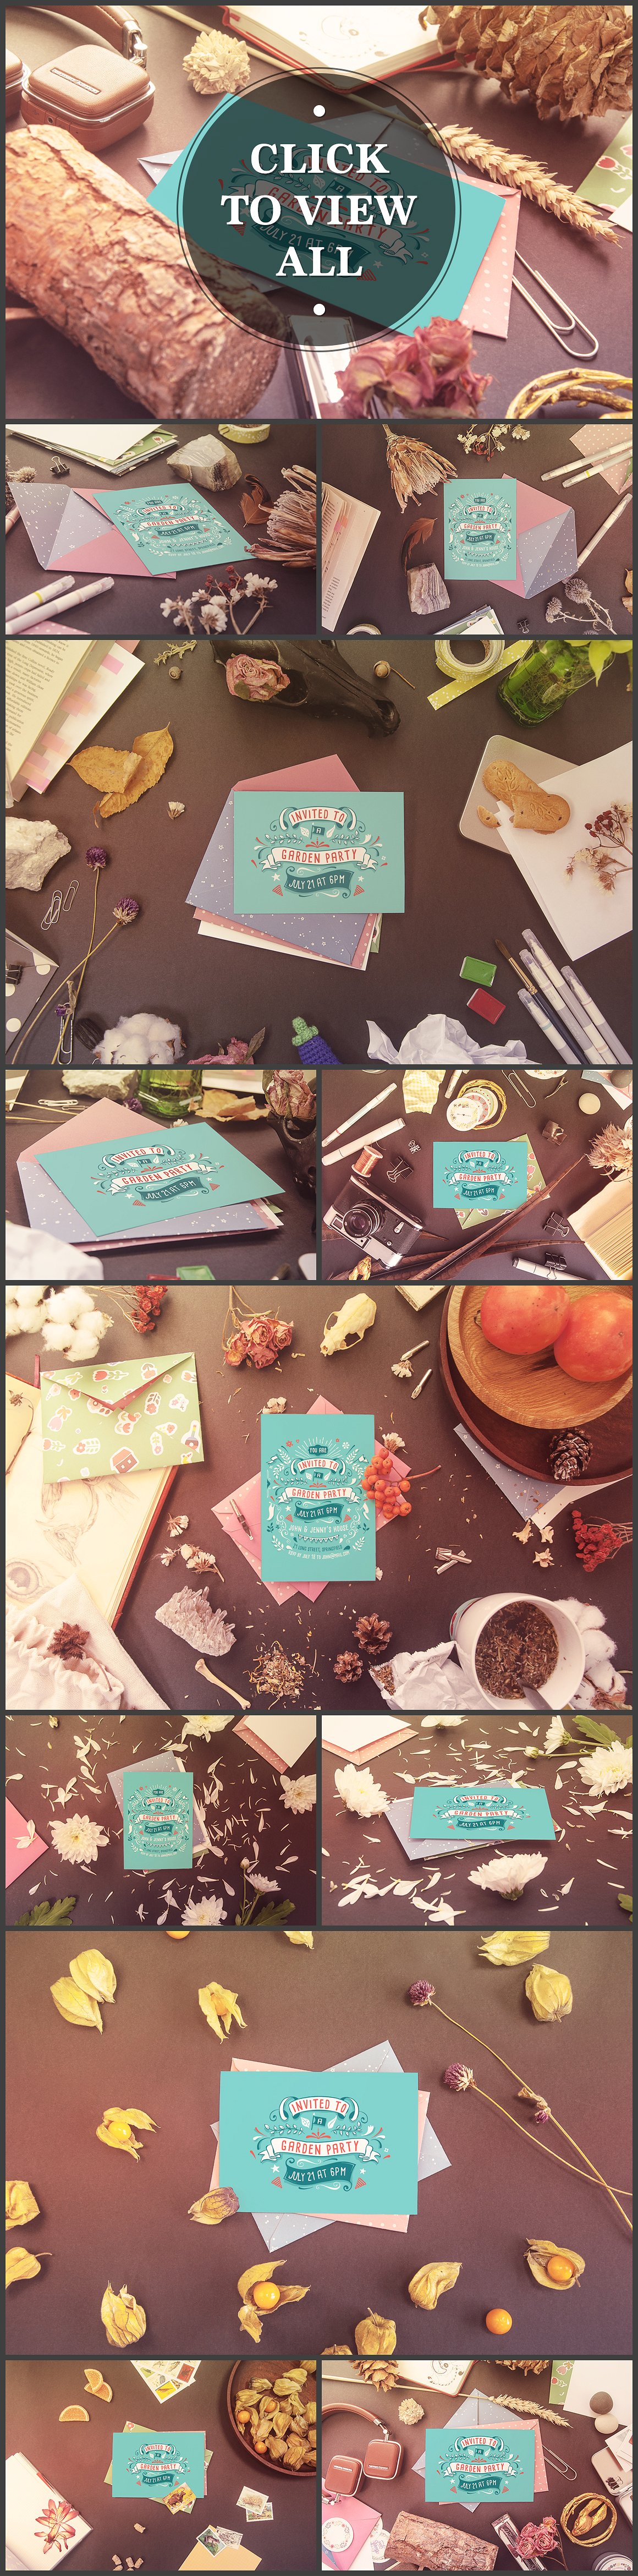 The Hip Greeting Cards & Invitations example image 2